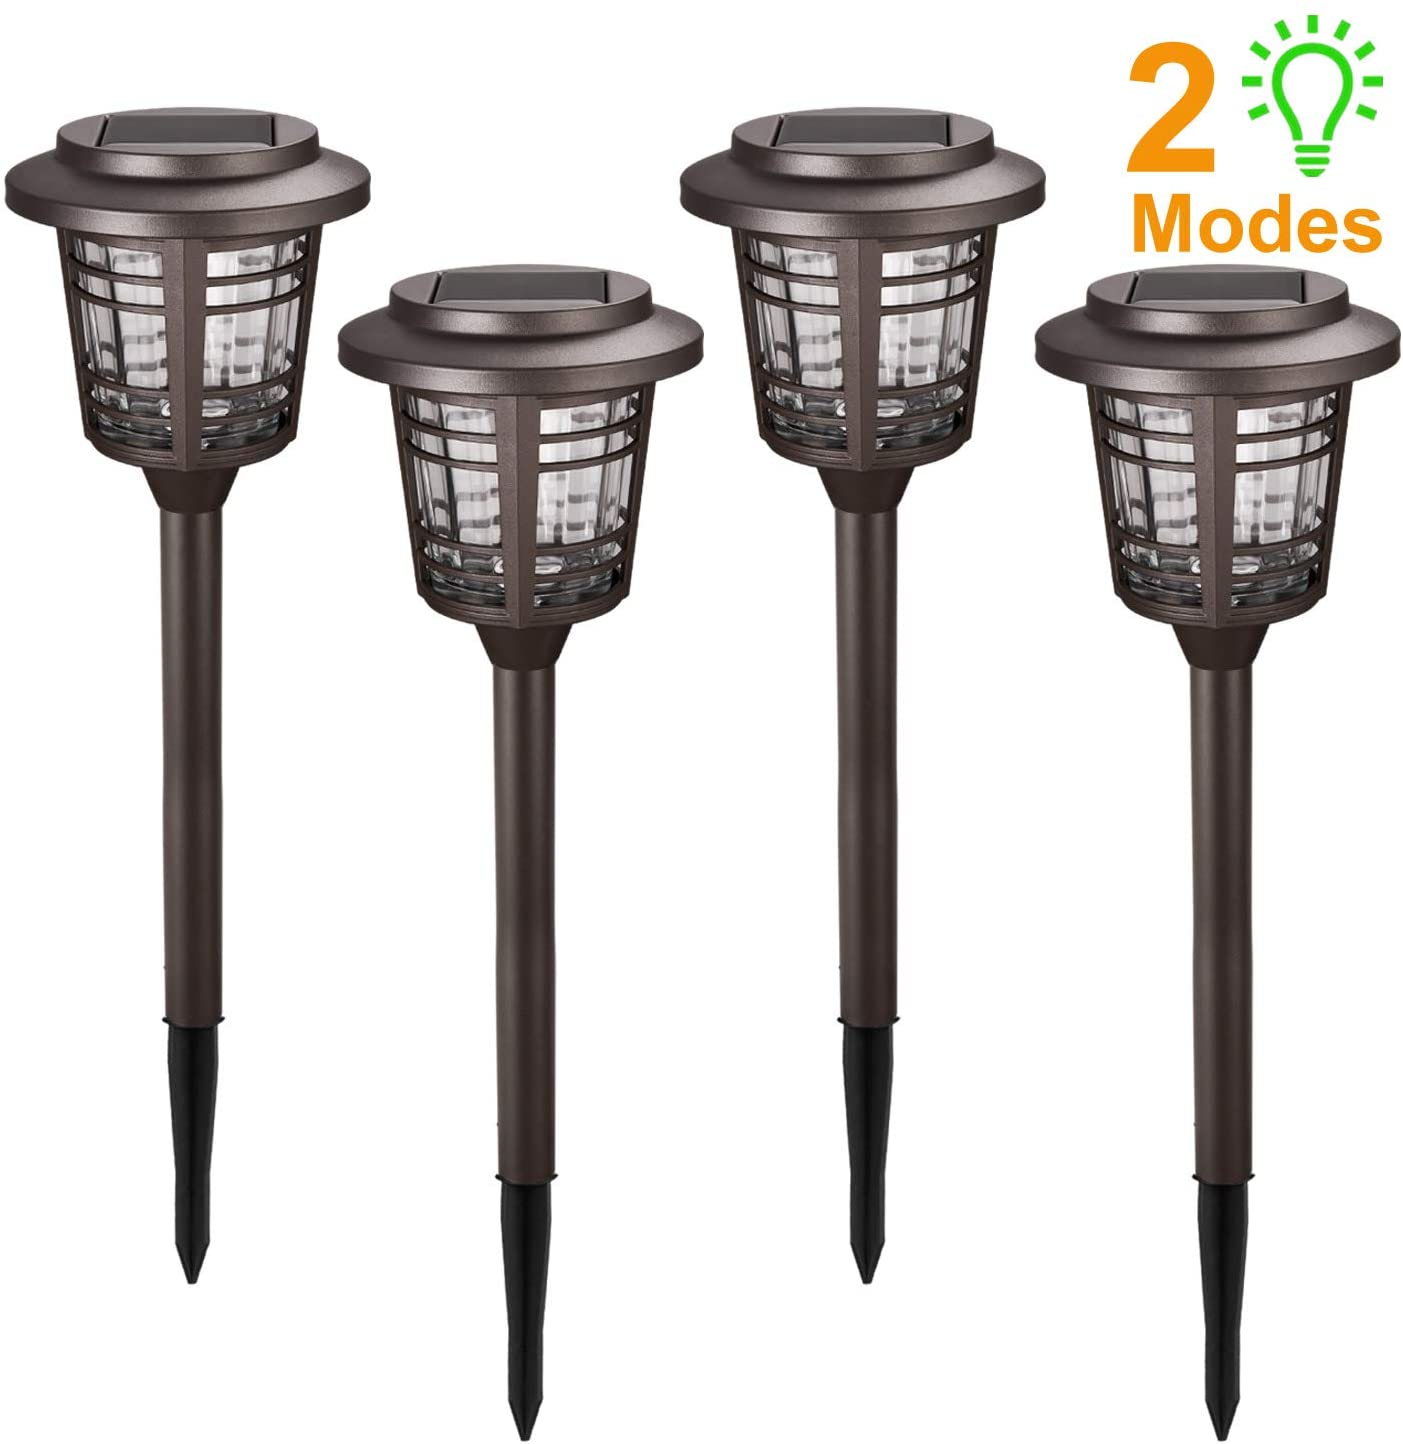 Solar Lights Pathway Outdoor - Solar Path Lights 4 Pack w/Rotate & Always-ON Mode, Long Last, 15-30 Lumens Bright IP65 Waterproof LED Pathway Lights Solar Powered, Auto On/Off, for Patio Lawn Yard